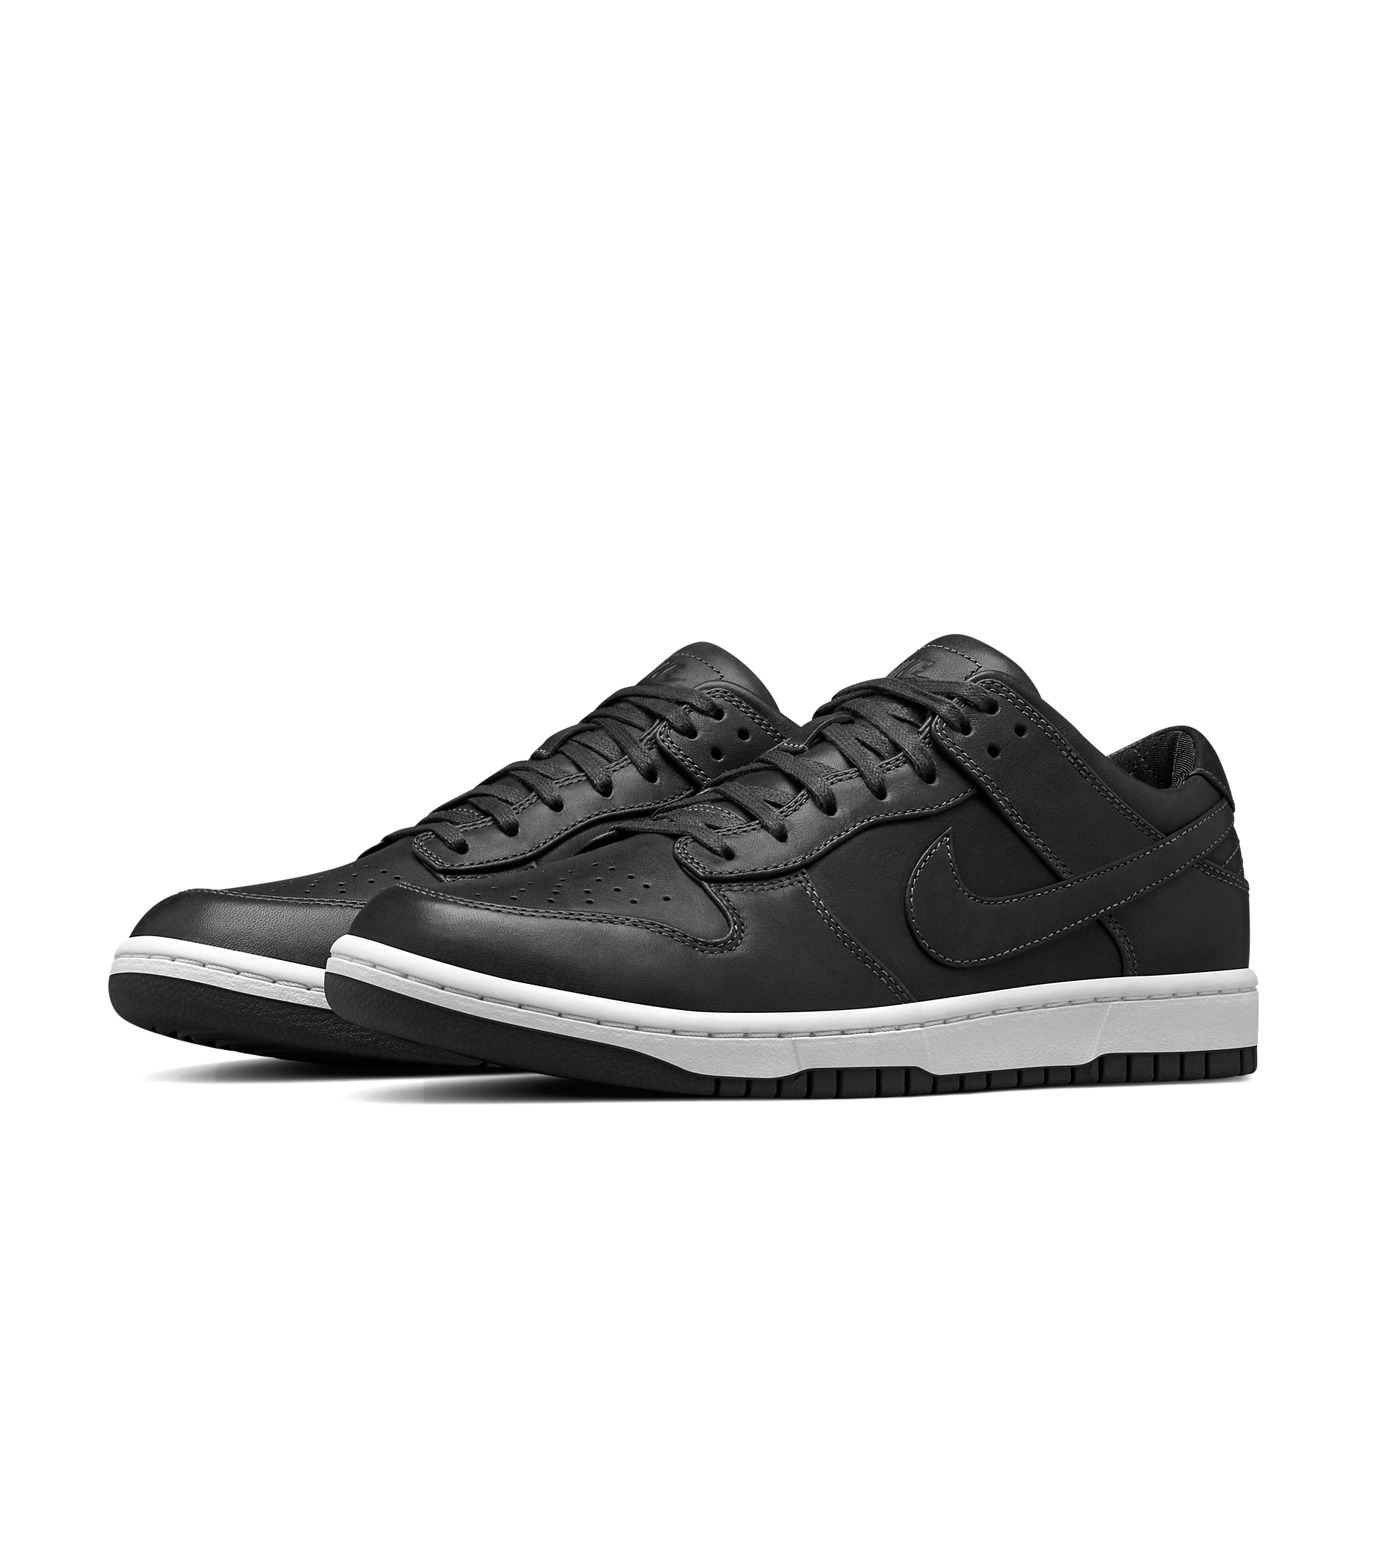 NIKE(ナイキ)のLAB DUNK LUX LOW-BLACK(シューズ/shoes)-857587-001-13 拡大詳細画像3